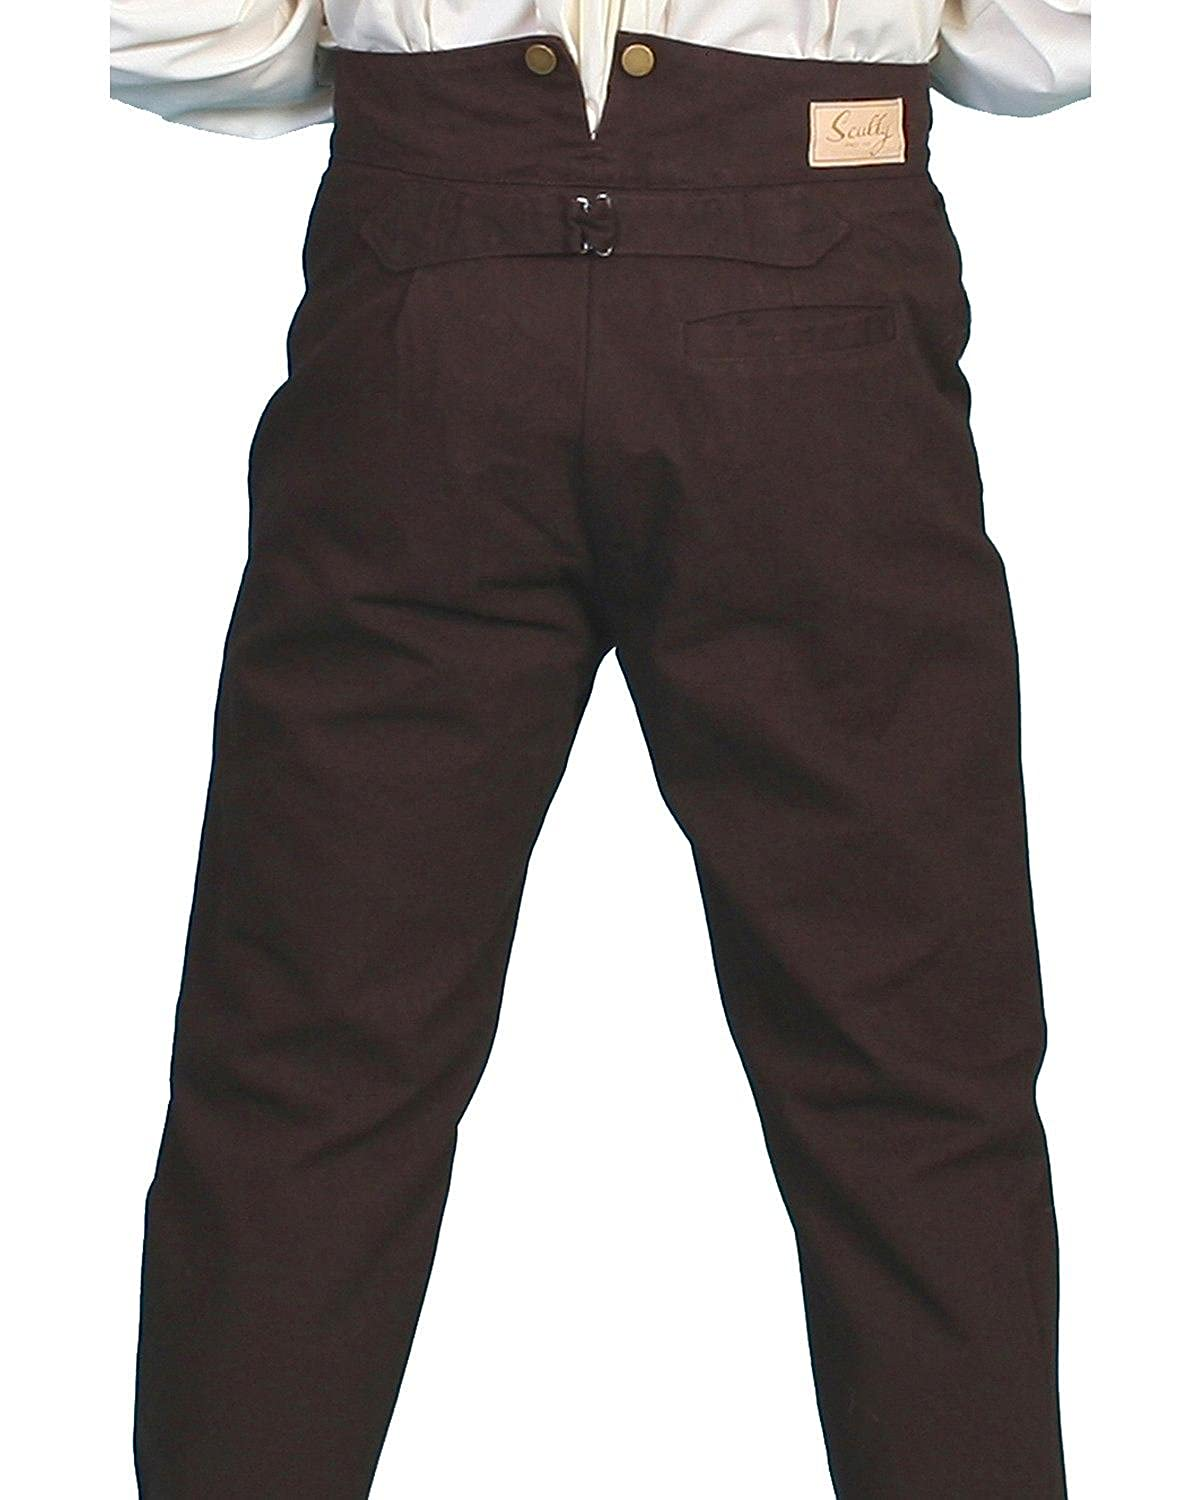 Men's Victorian Costume and Clothing Guide Scully Rangewear Mens Rangewear Canvas Pants $51.90 AT vintagedancer.com